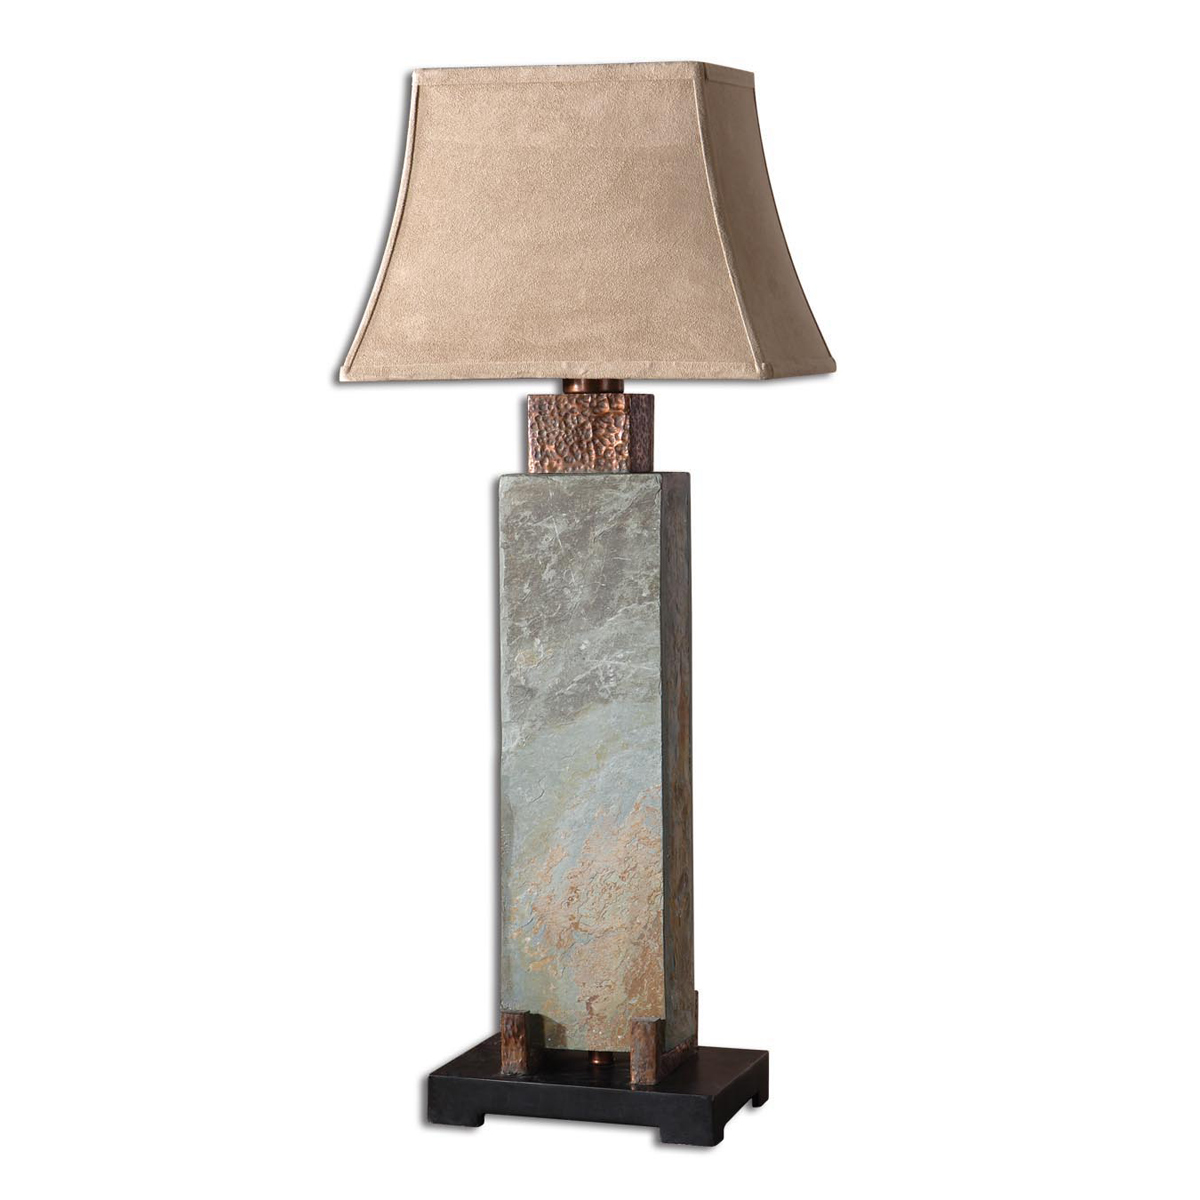 rustic table lamps copper valley tall lamp black forest decor accent lucite coffee tray western floor pier one bench beach kitchen antique style side wood windmill clock and glass